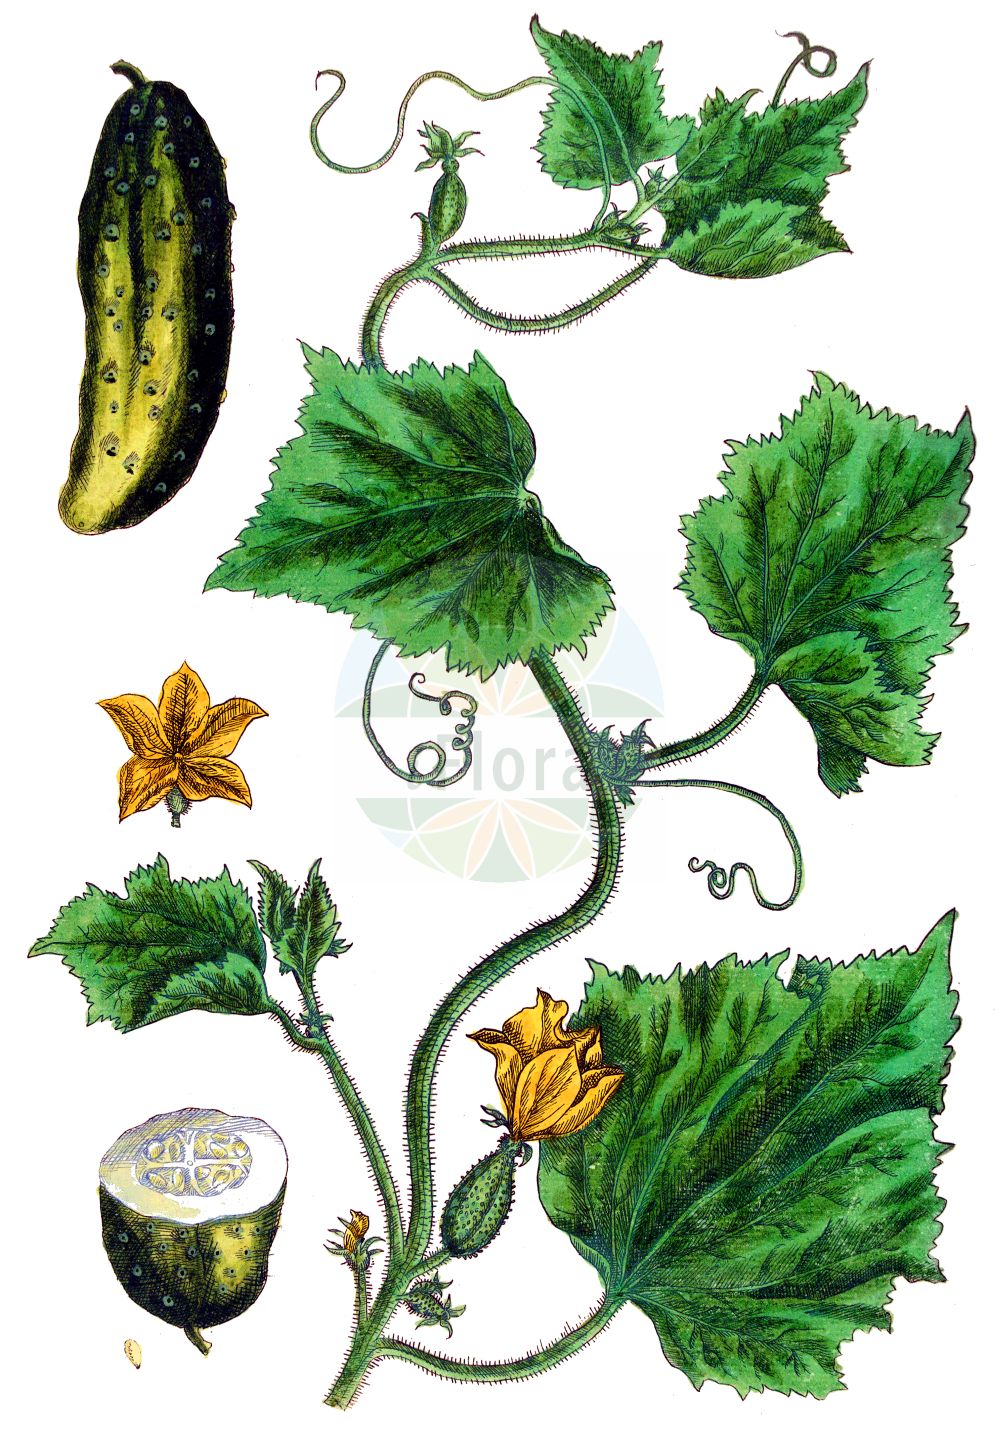 Historische Abbildung von Cucumis sativus. Das Bild zeigt Blatt, Bluete, Frucht und Same. ---- Historical Drawing of Cucumis sativus.The image is showing leaf, flower, fruit and seed.(Cucumis sativus,Cucumis esculentus,Cucumis sativus,Cucumis,Cucurbitaceae,Kuerbisgewaechse,Cucurbit family,Blatt,Bluete,Frucht,Same,leaf,flower,fruit,seed,Blackwell (1737-1739))